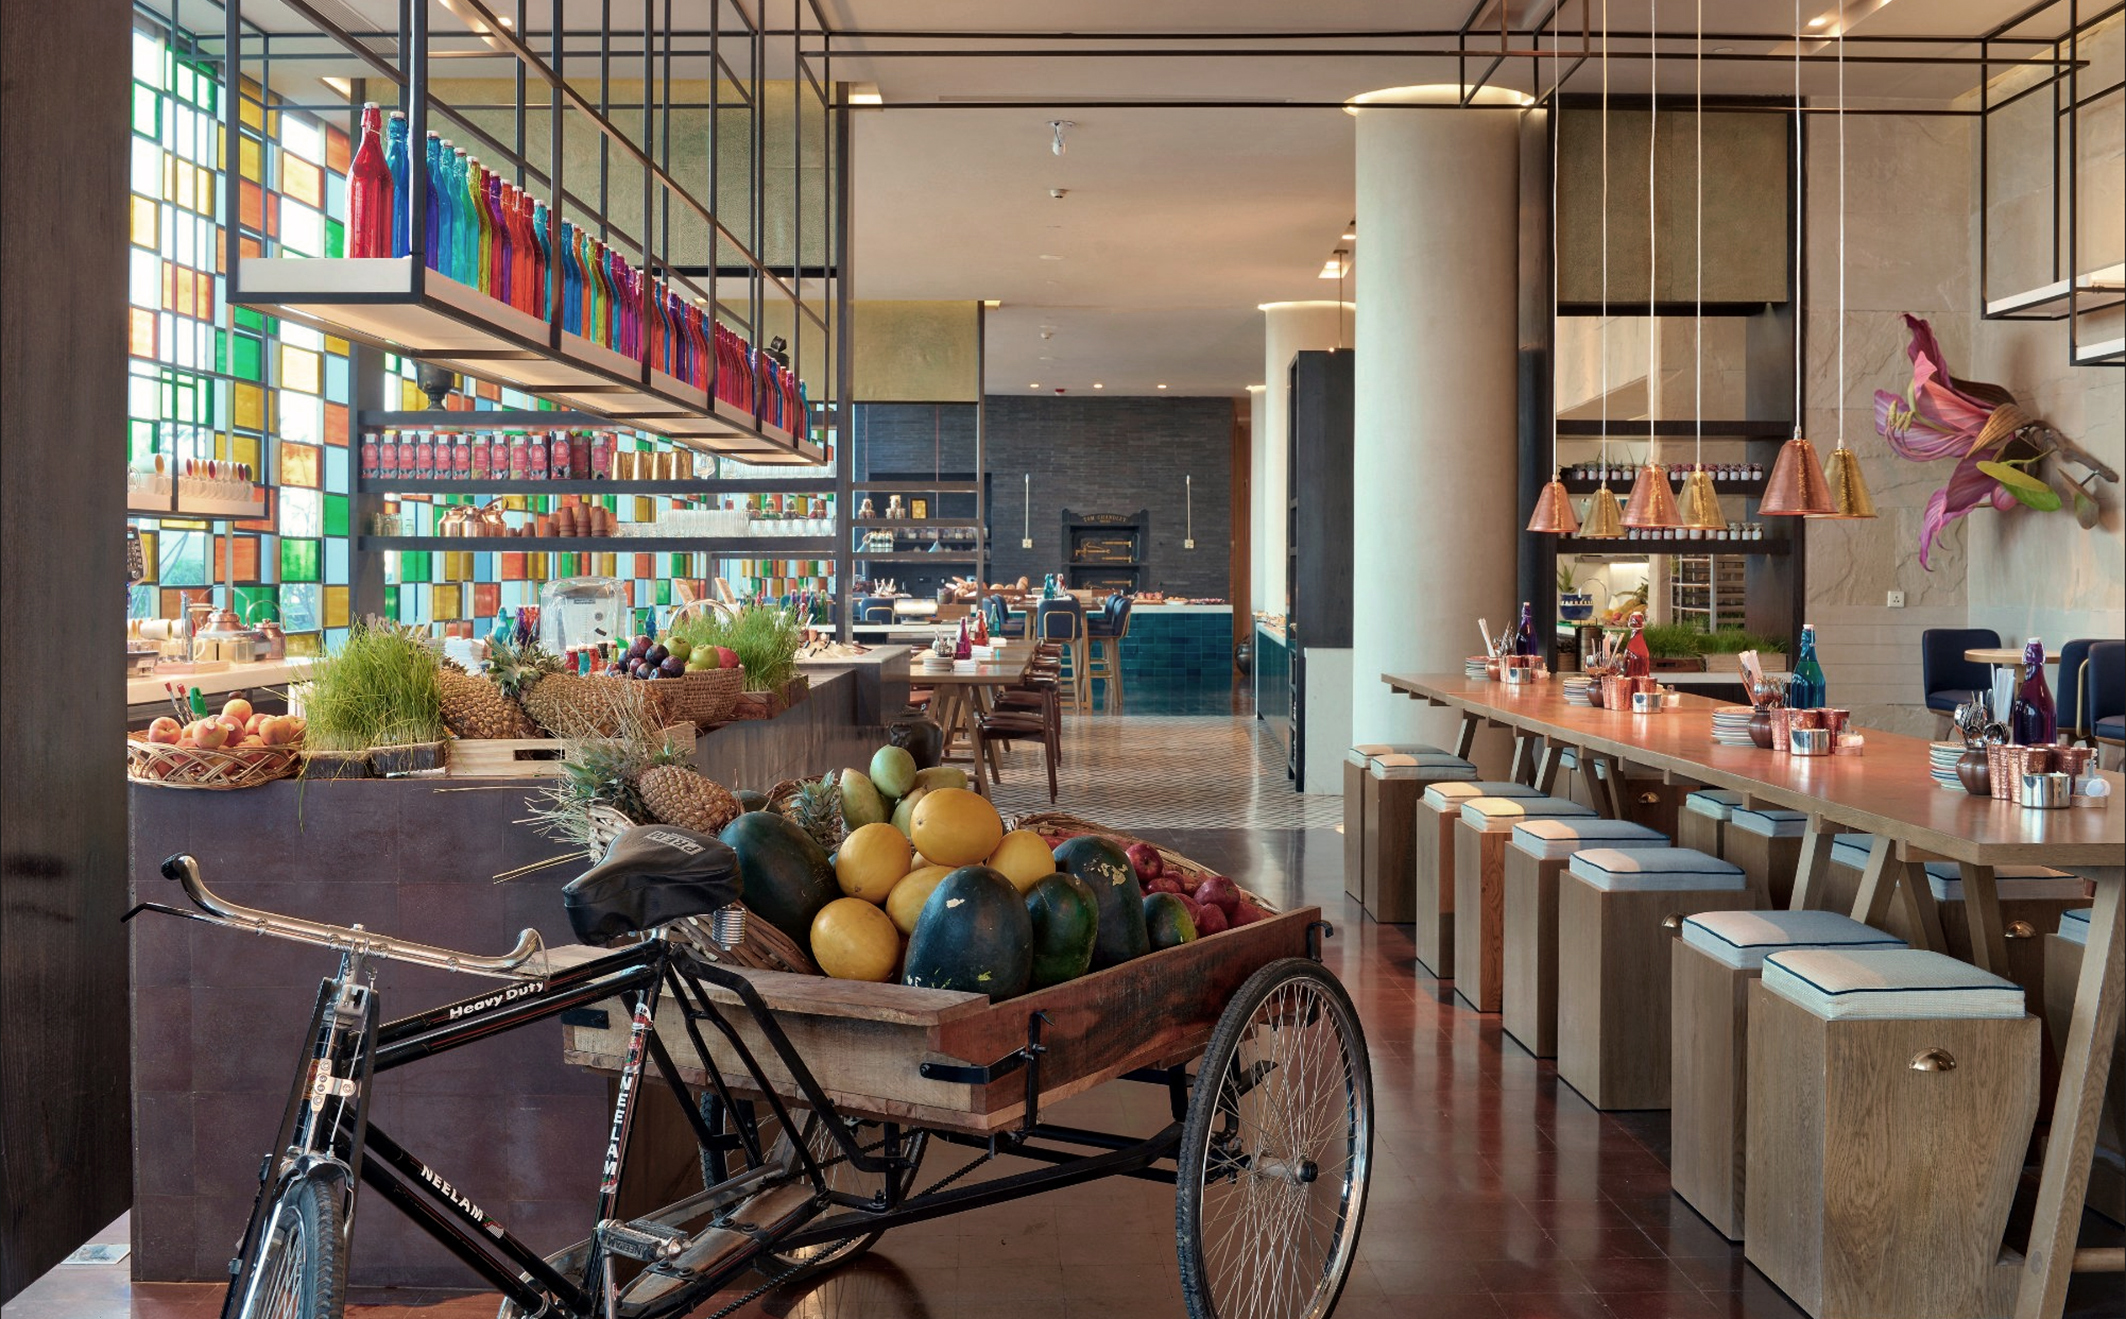 THE NEW ANDAZ HOTEL OPENS IN DELHI DESIGNED BY VIRGILE